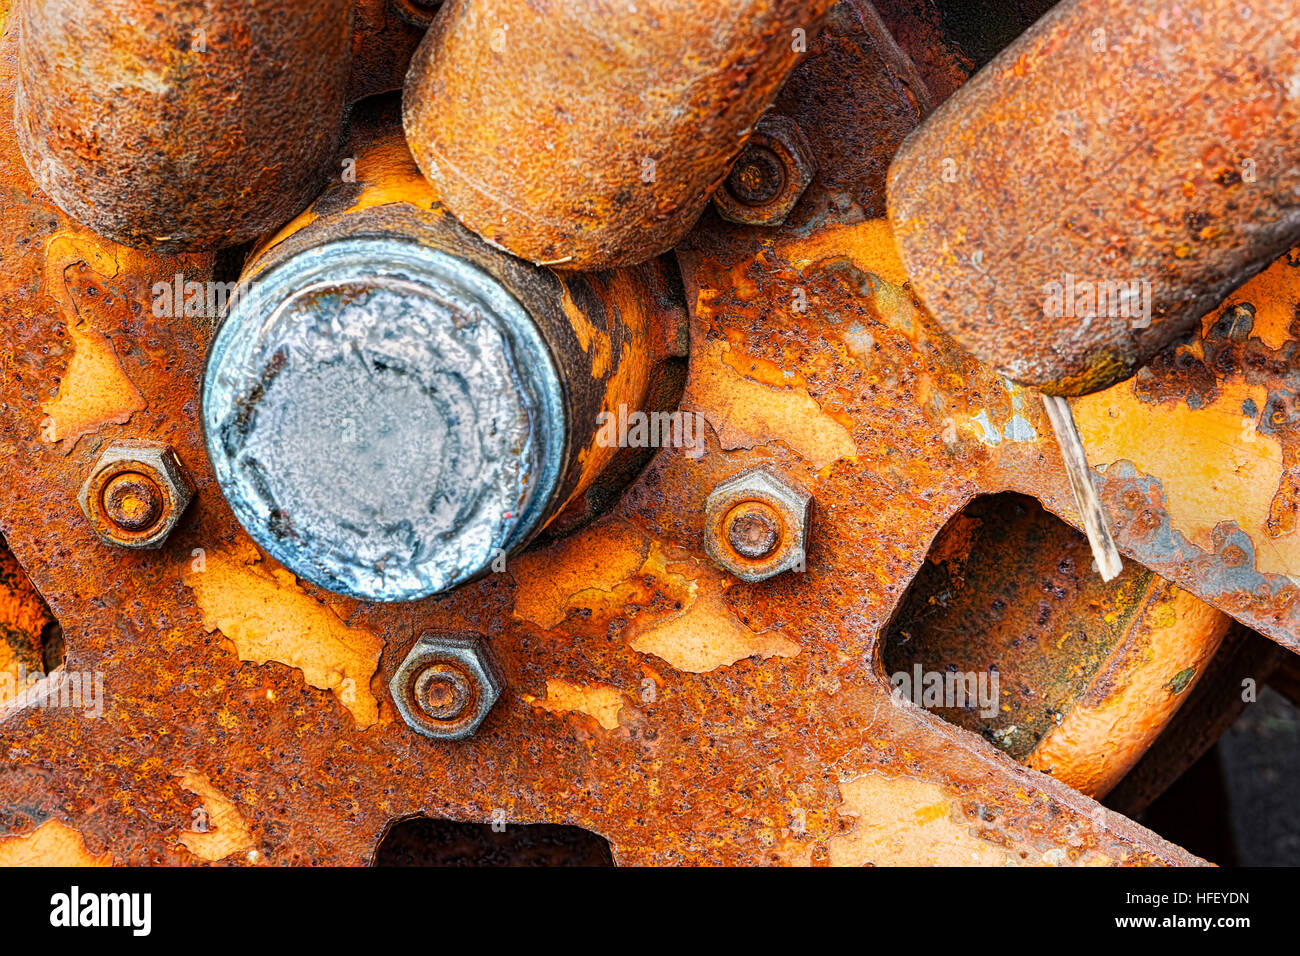 Rusted, vintage, antique, wheel hub in salvage  yard.  Spokes, bolts, and bearings. - Stock Image